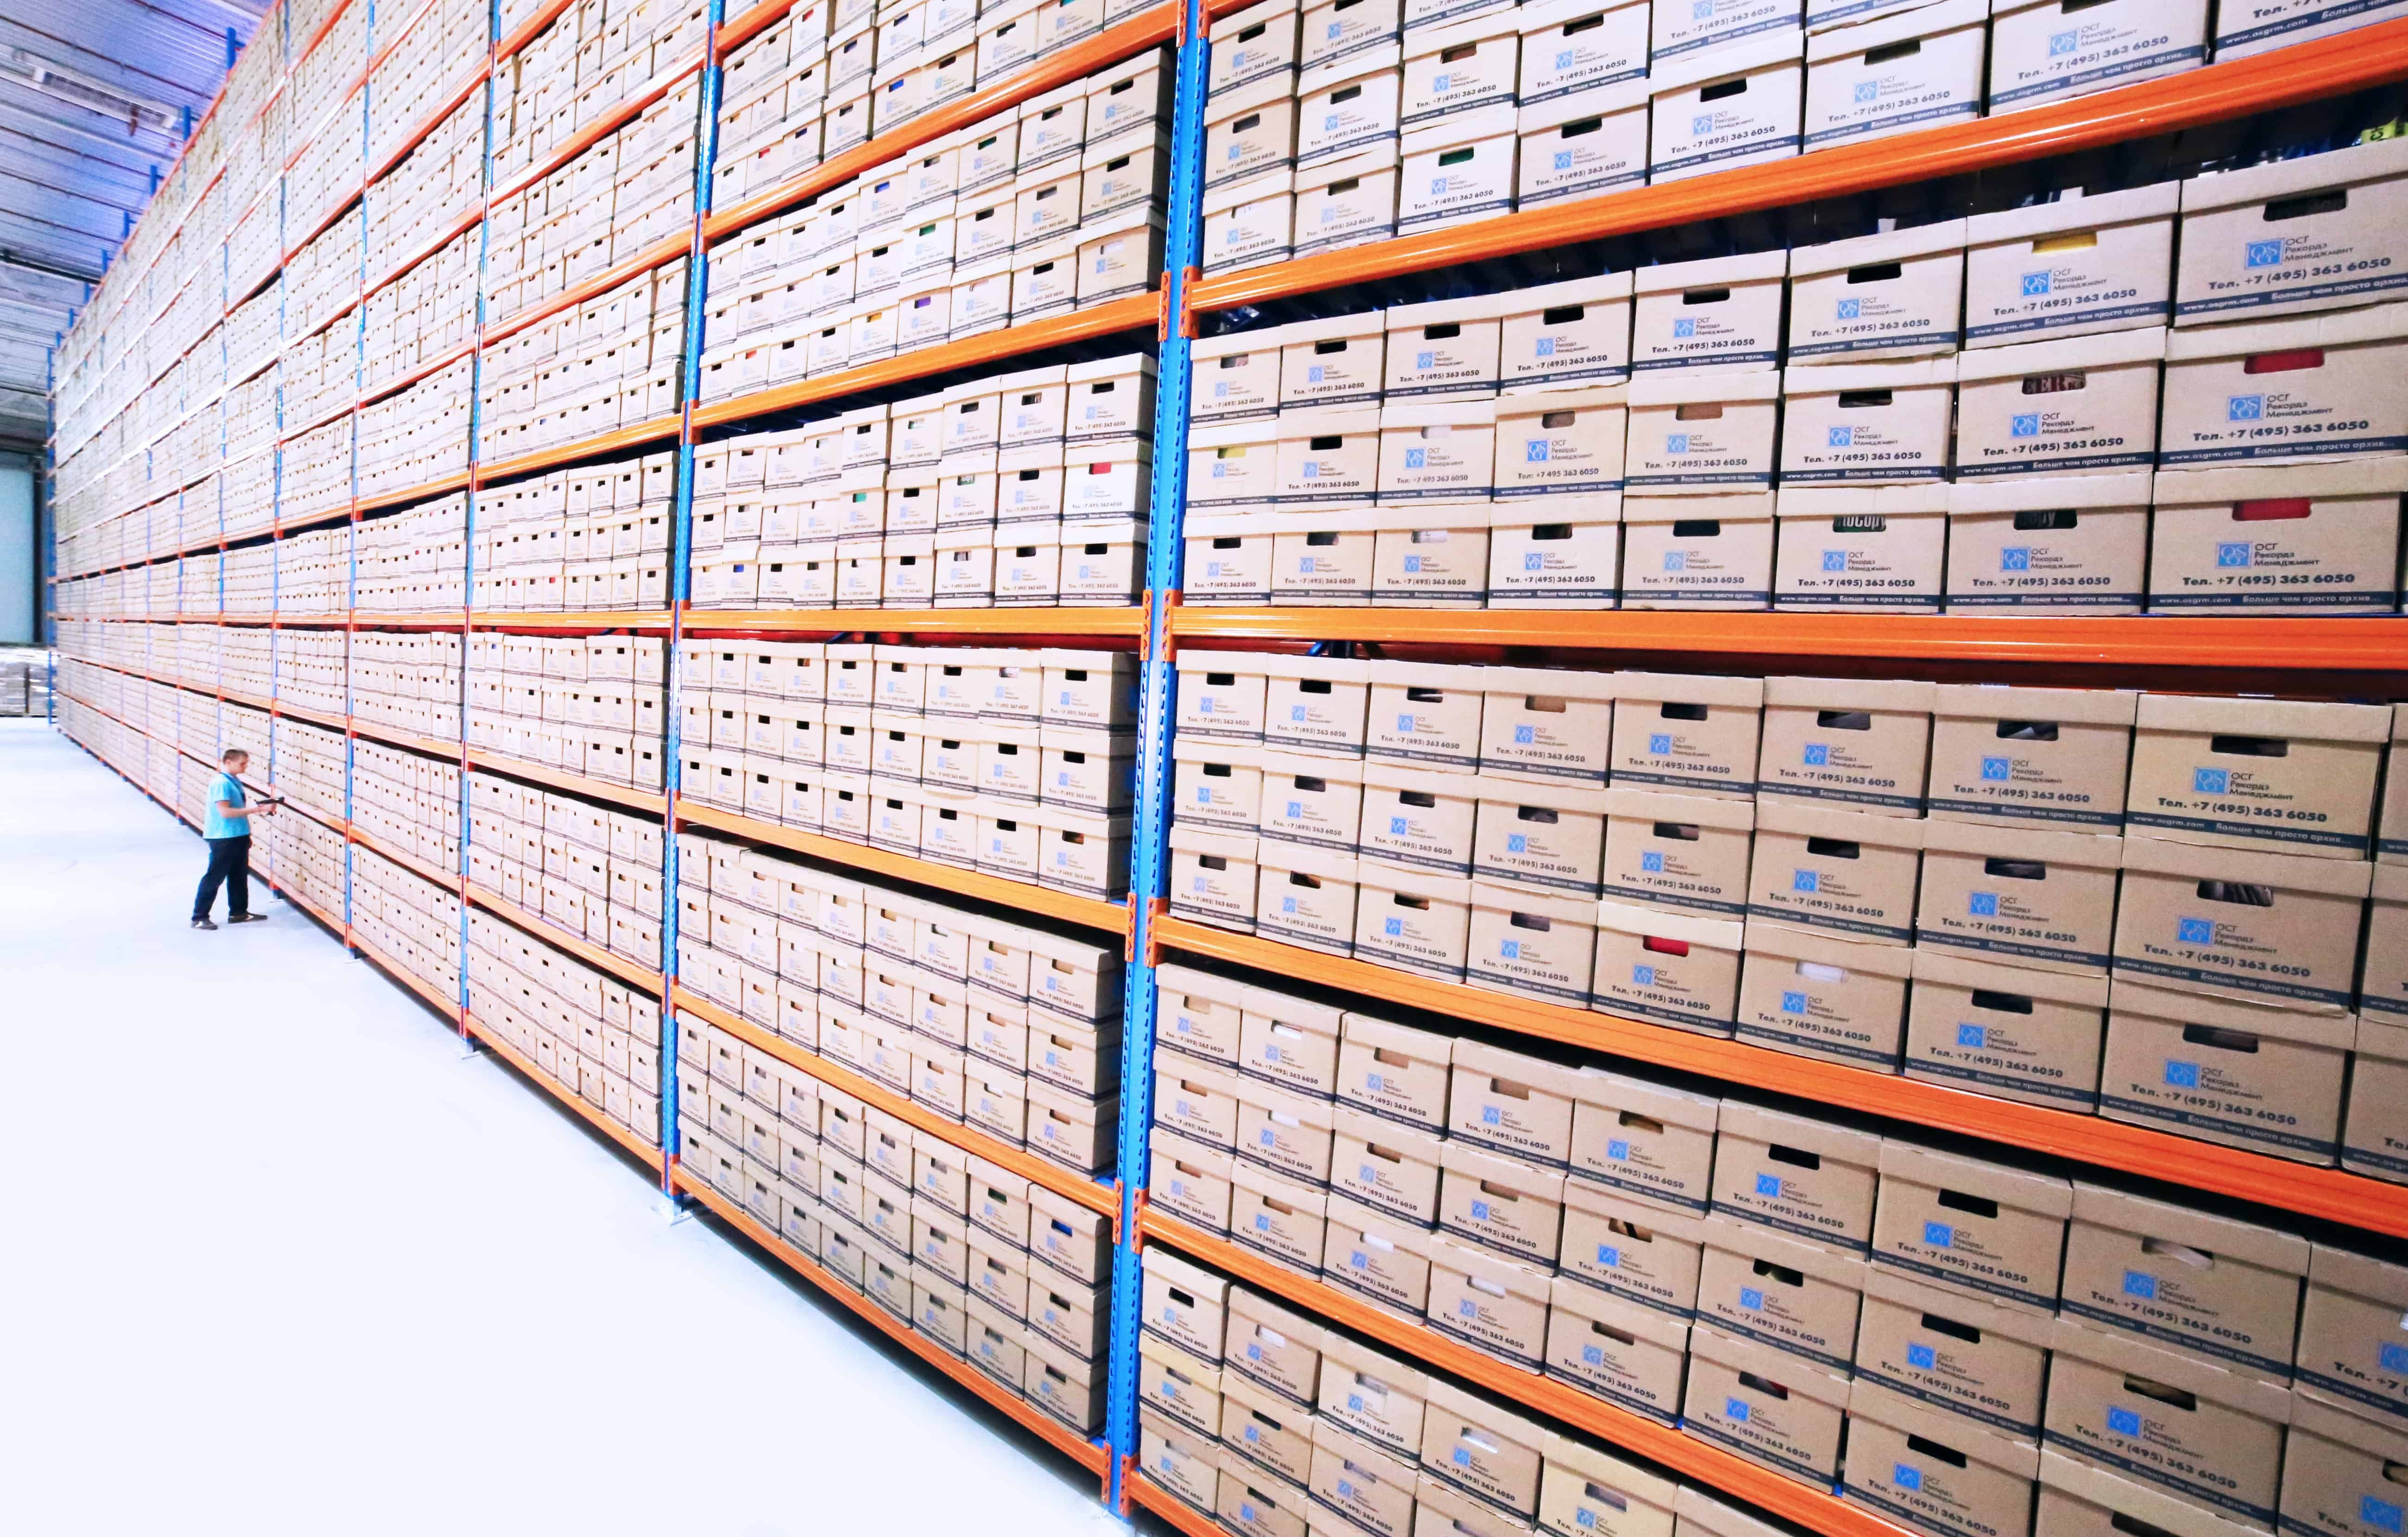 a white painted floor in a warehouse with yellow and blue painted shelves stacked six racks high full of boxes